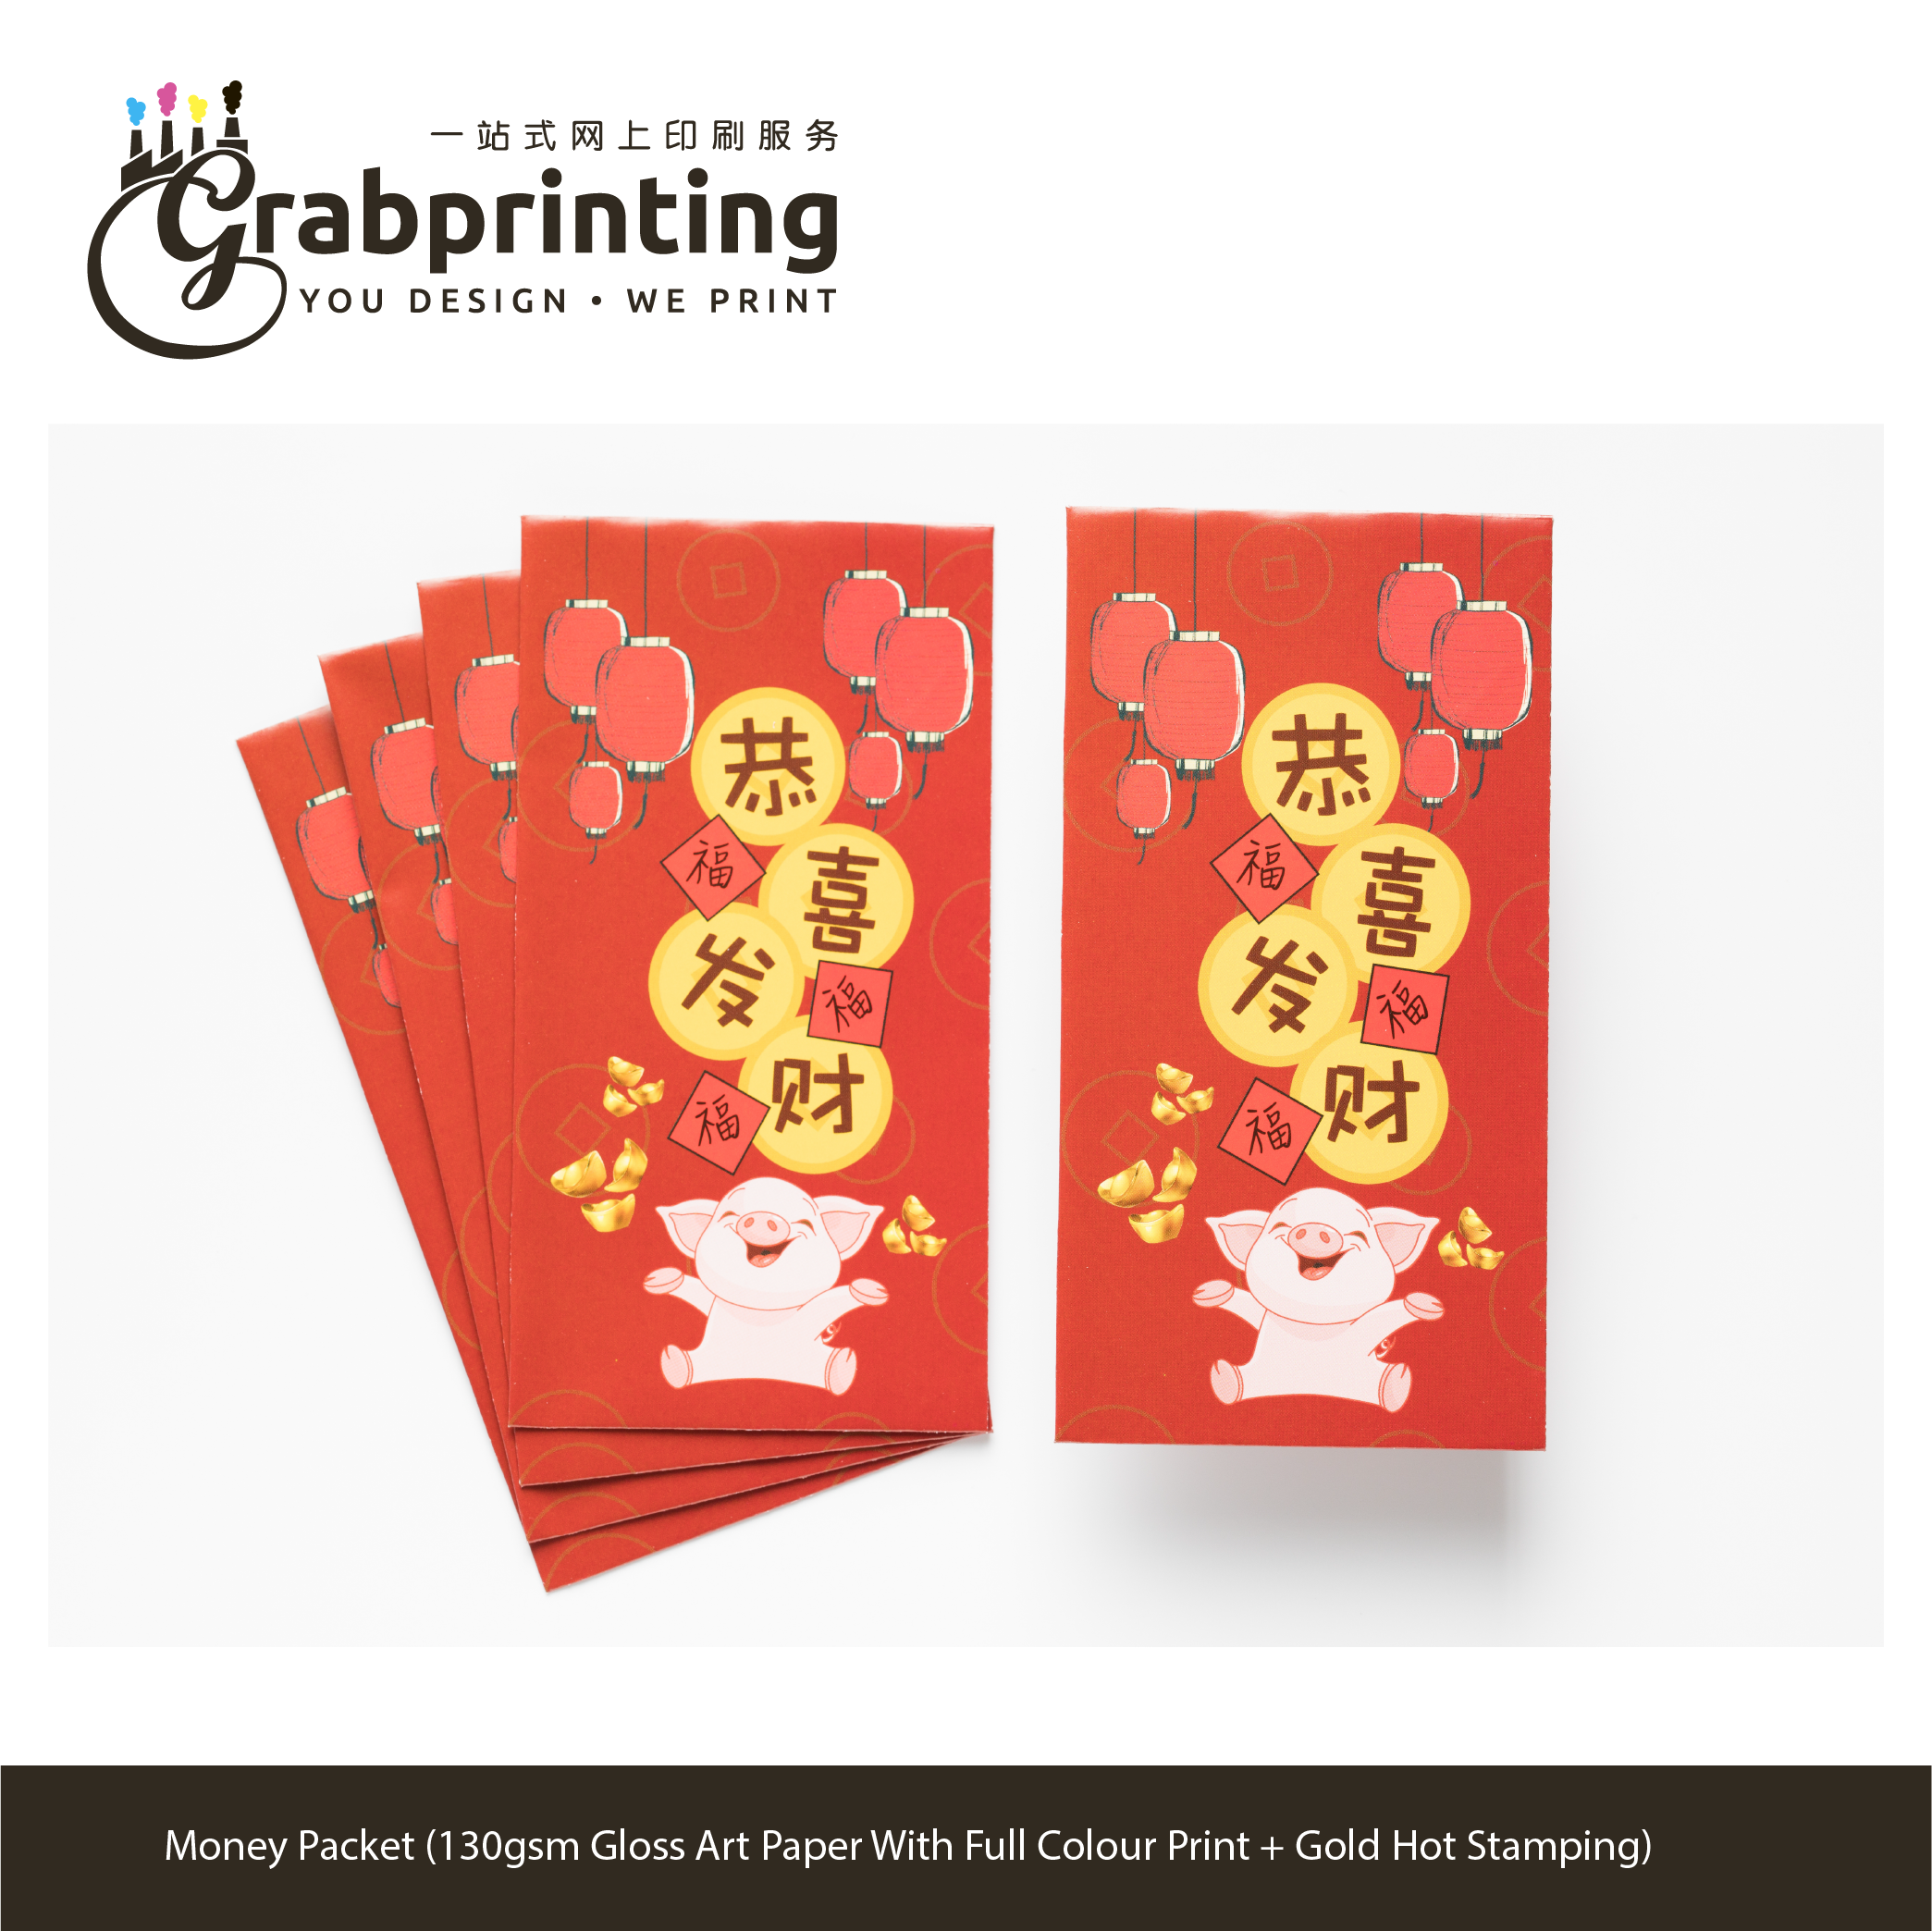 money packet printing Money Packet 130gsm Gloss Art Paper grabprinting 06 Money Packet 130gsm Gloss Art Paper With Full Colour Print Gold Hot Stamping 501px 501px